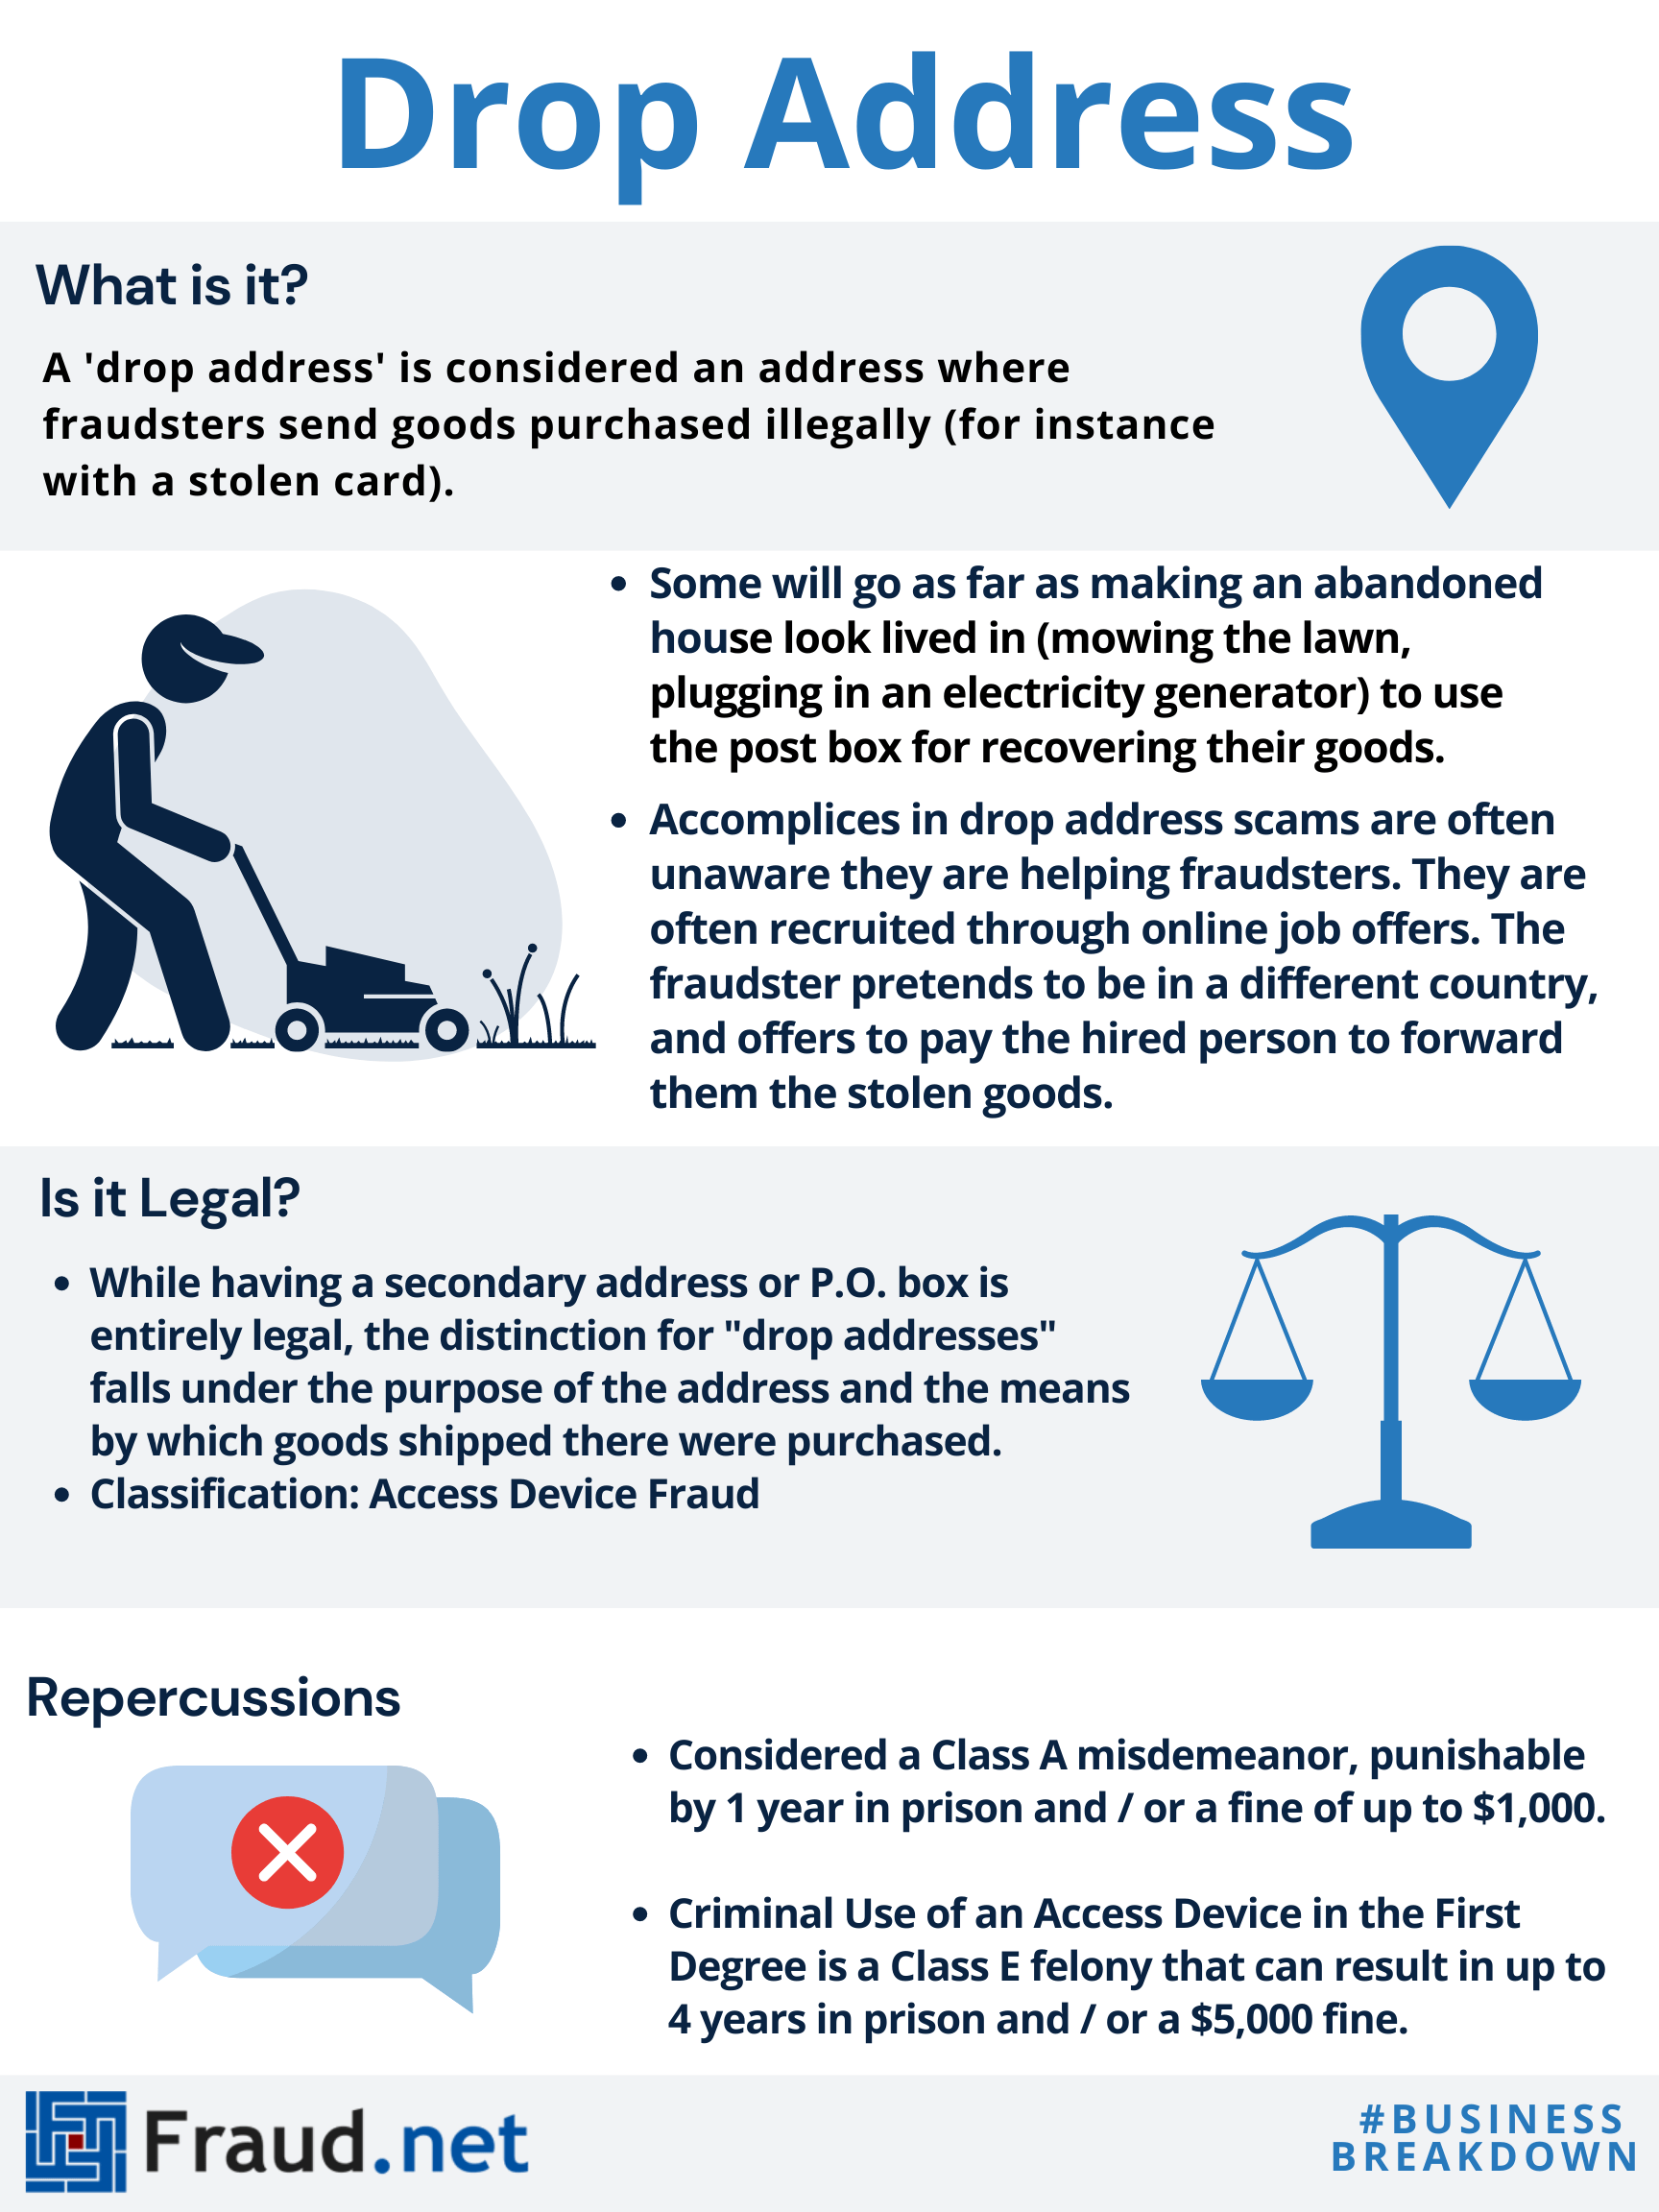 Drop Address Information Infographic